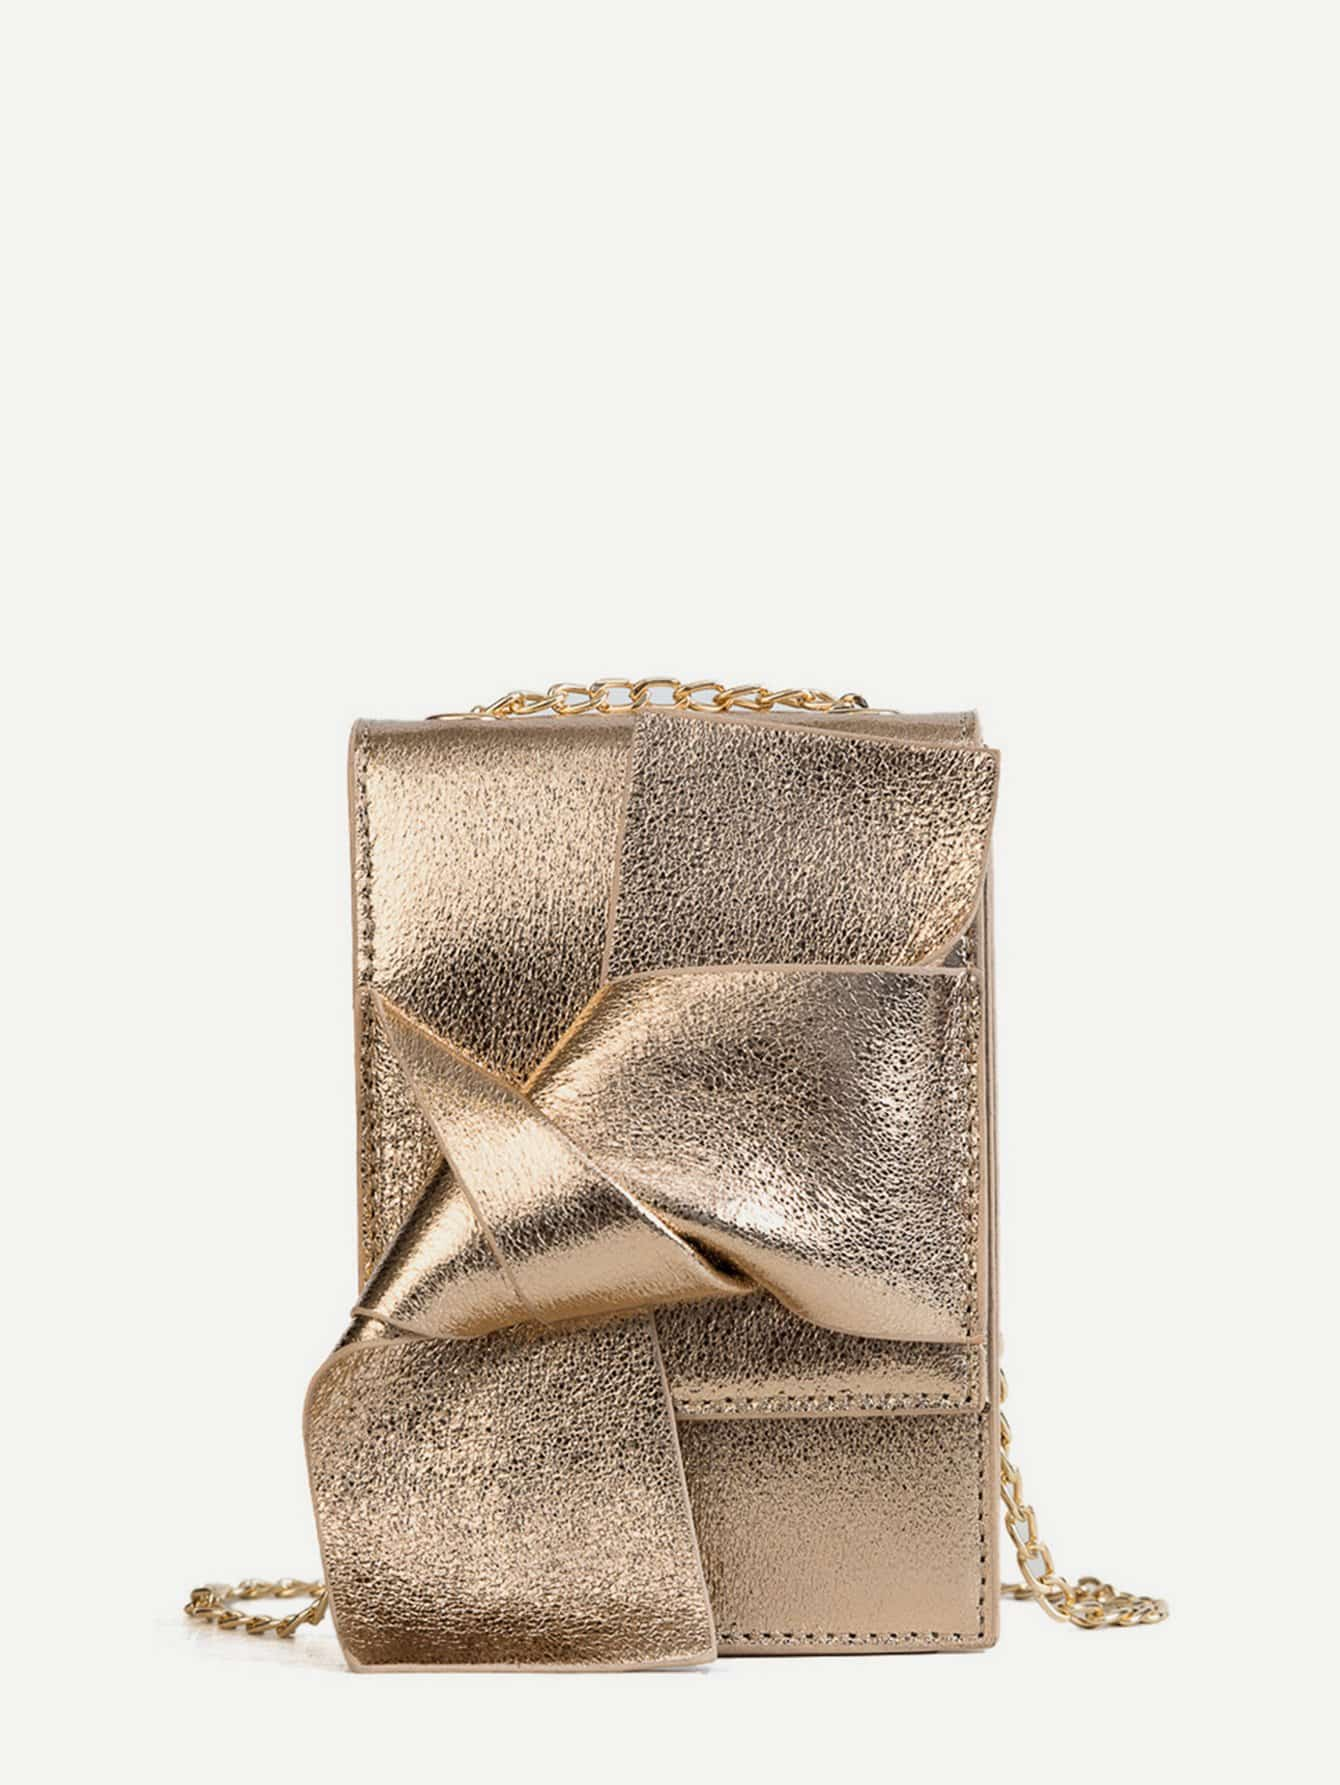 Knotted Design Chain Crossbody Bag